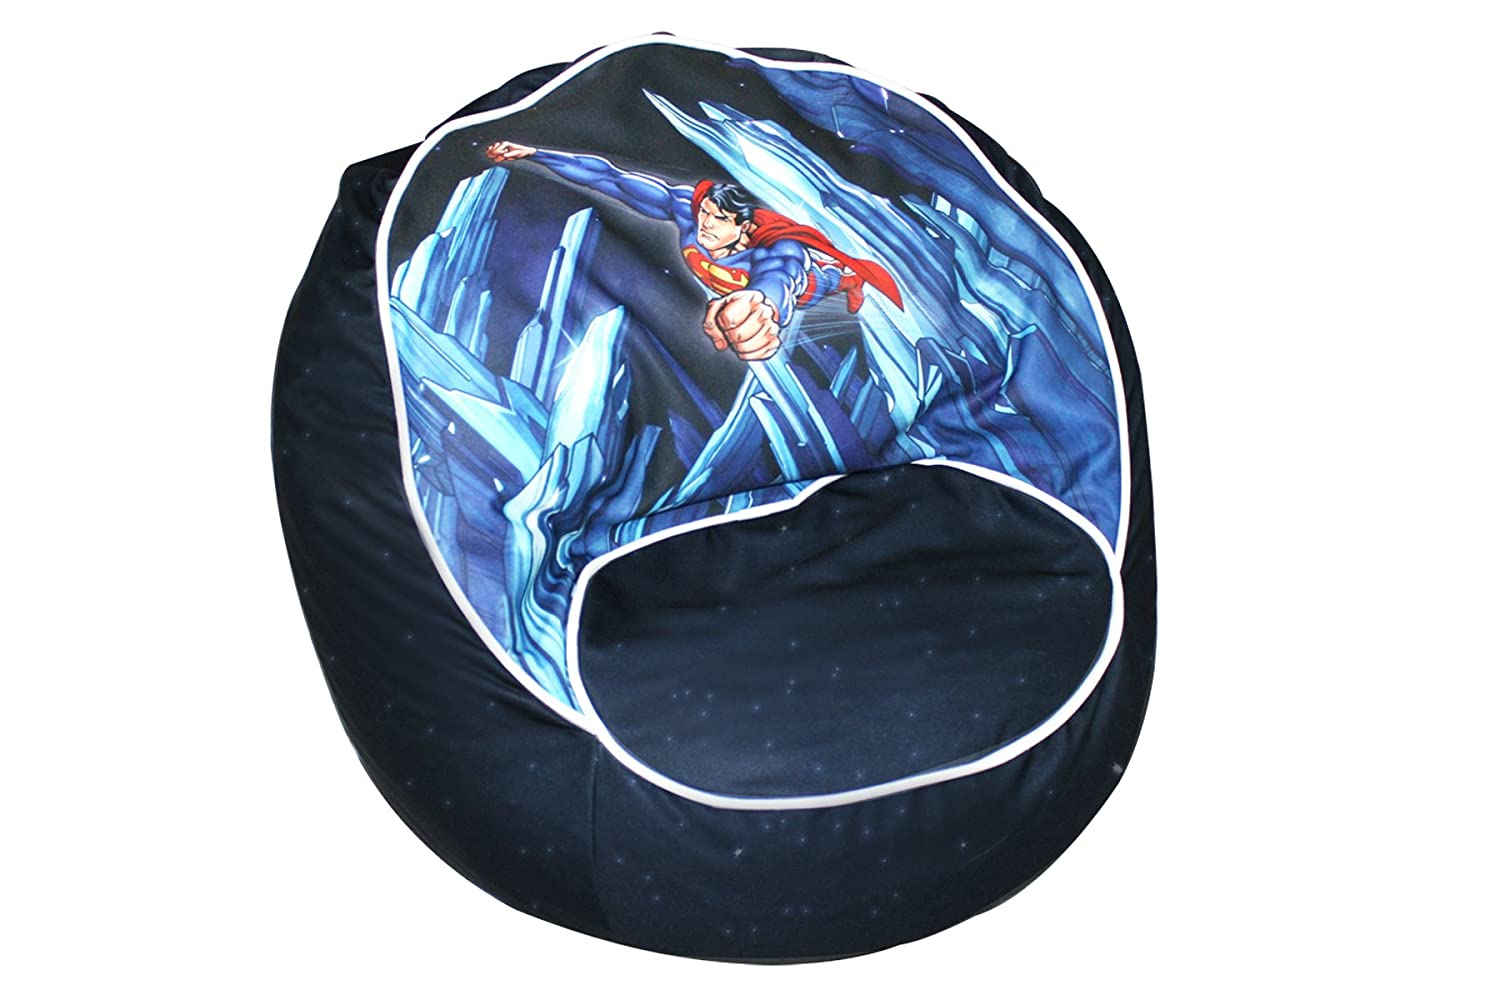 superhero bean bag chair countertop tables and chairs superman furniture totally kids bedrooms